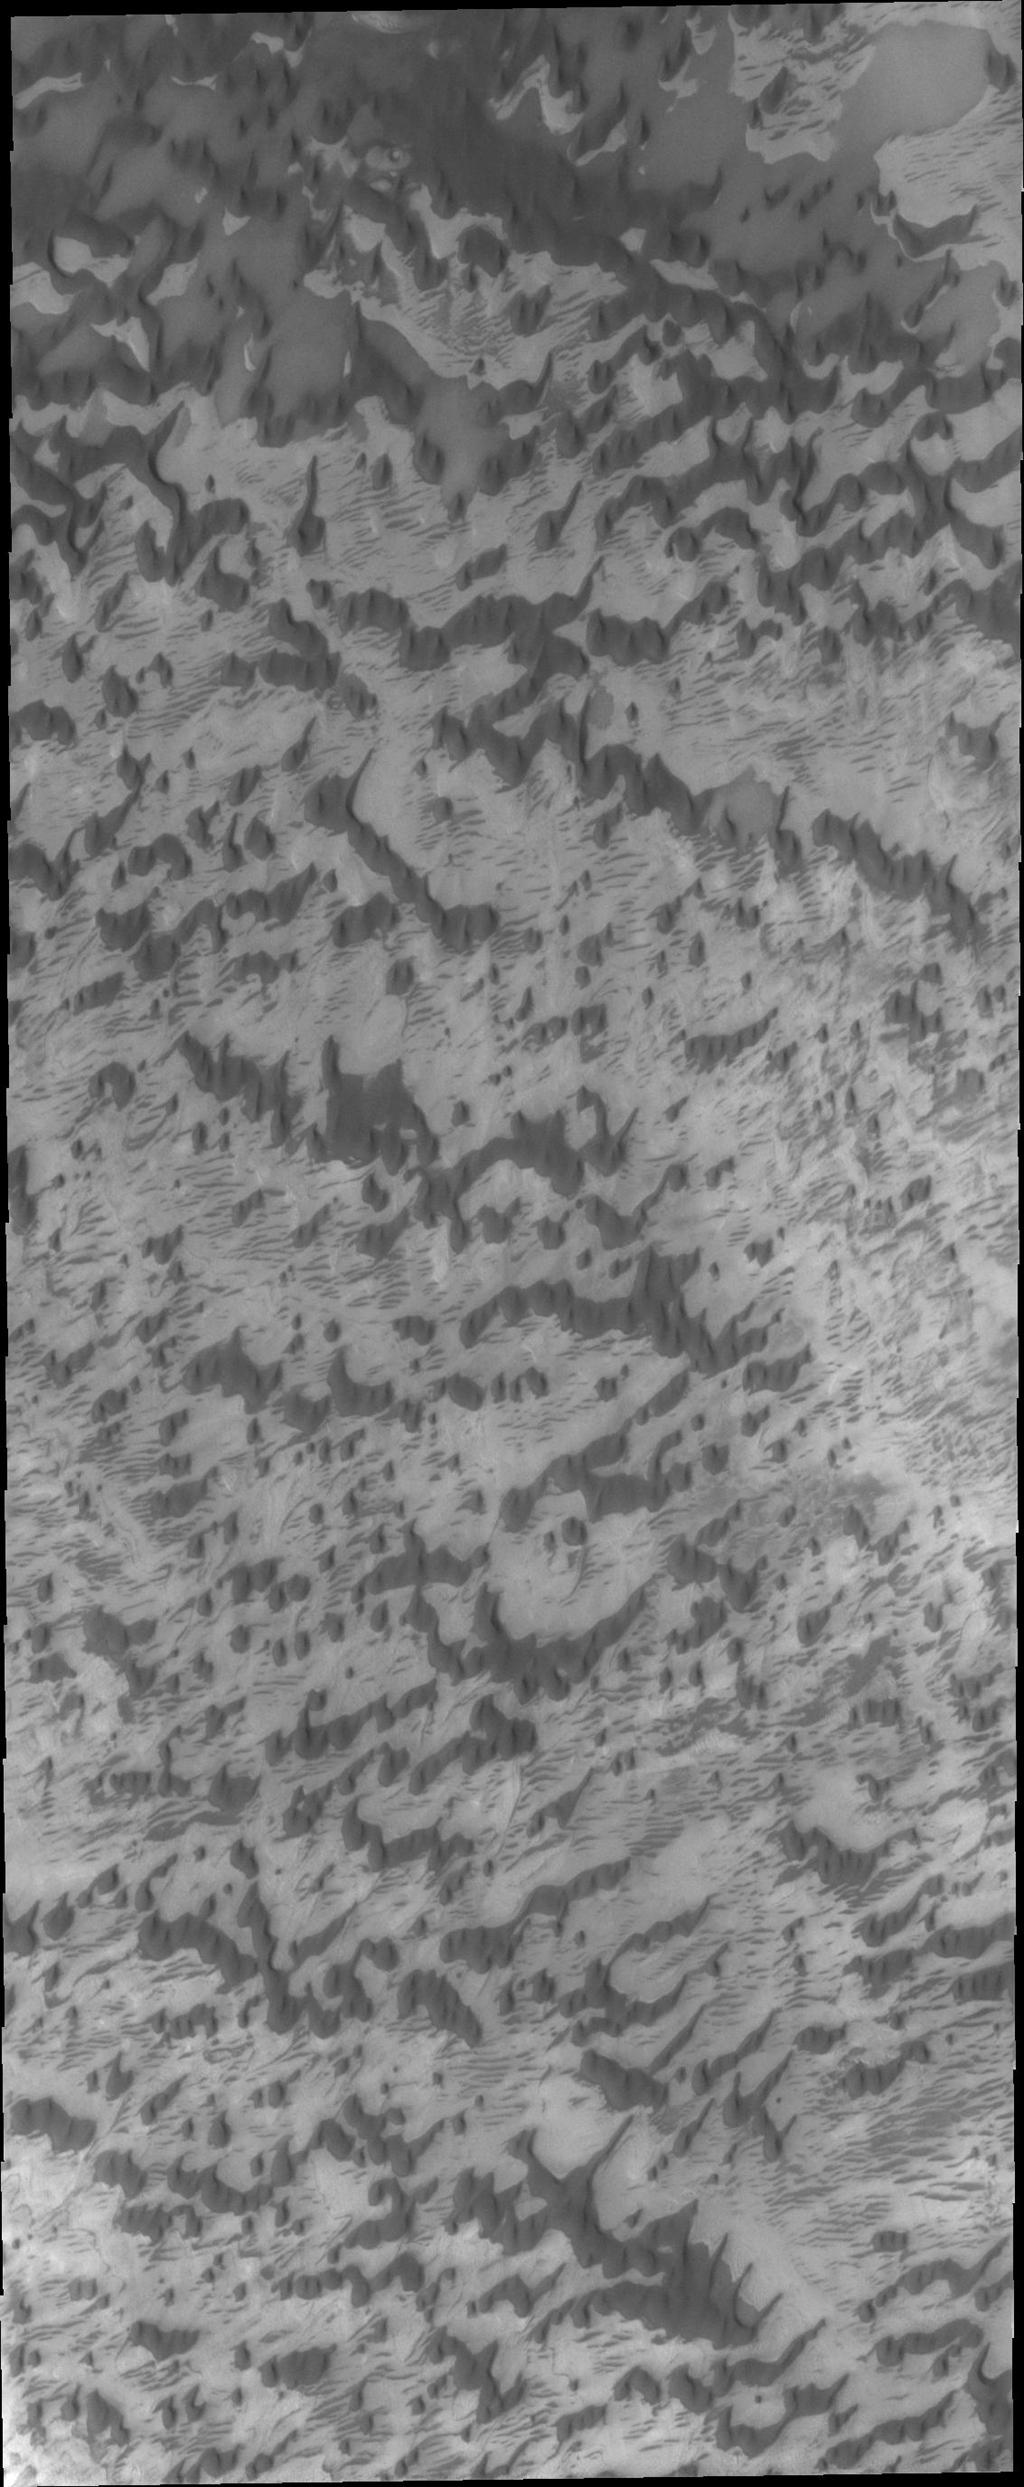 As the sun warms the surface and more frost is removed, the dunes and other features near the north pole of Mars are revealed. This image from NASA's Mars Odyssey shows that the inter-dune areas are complex.